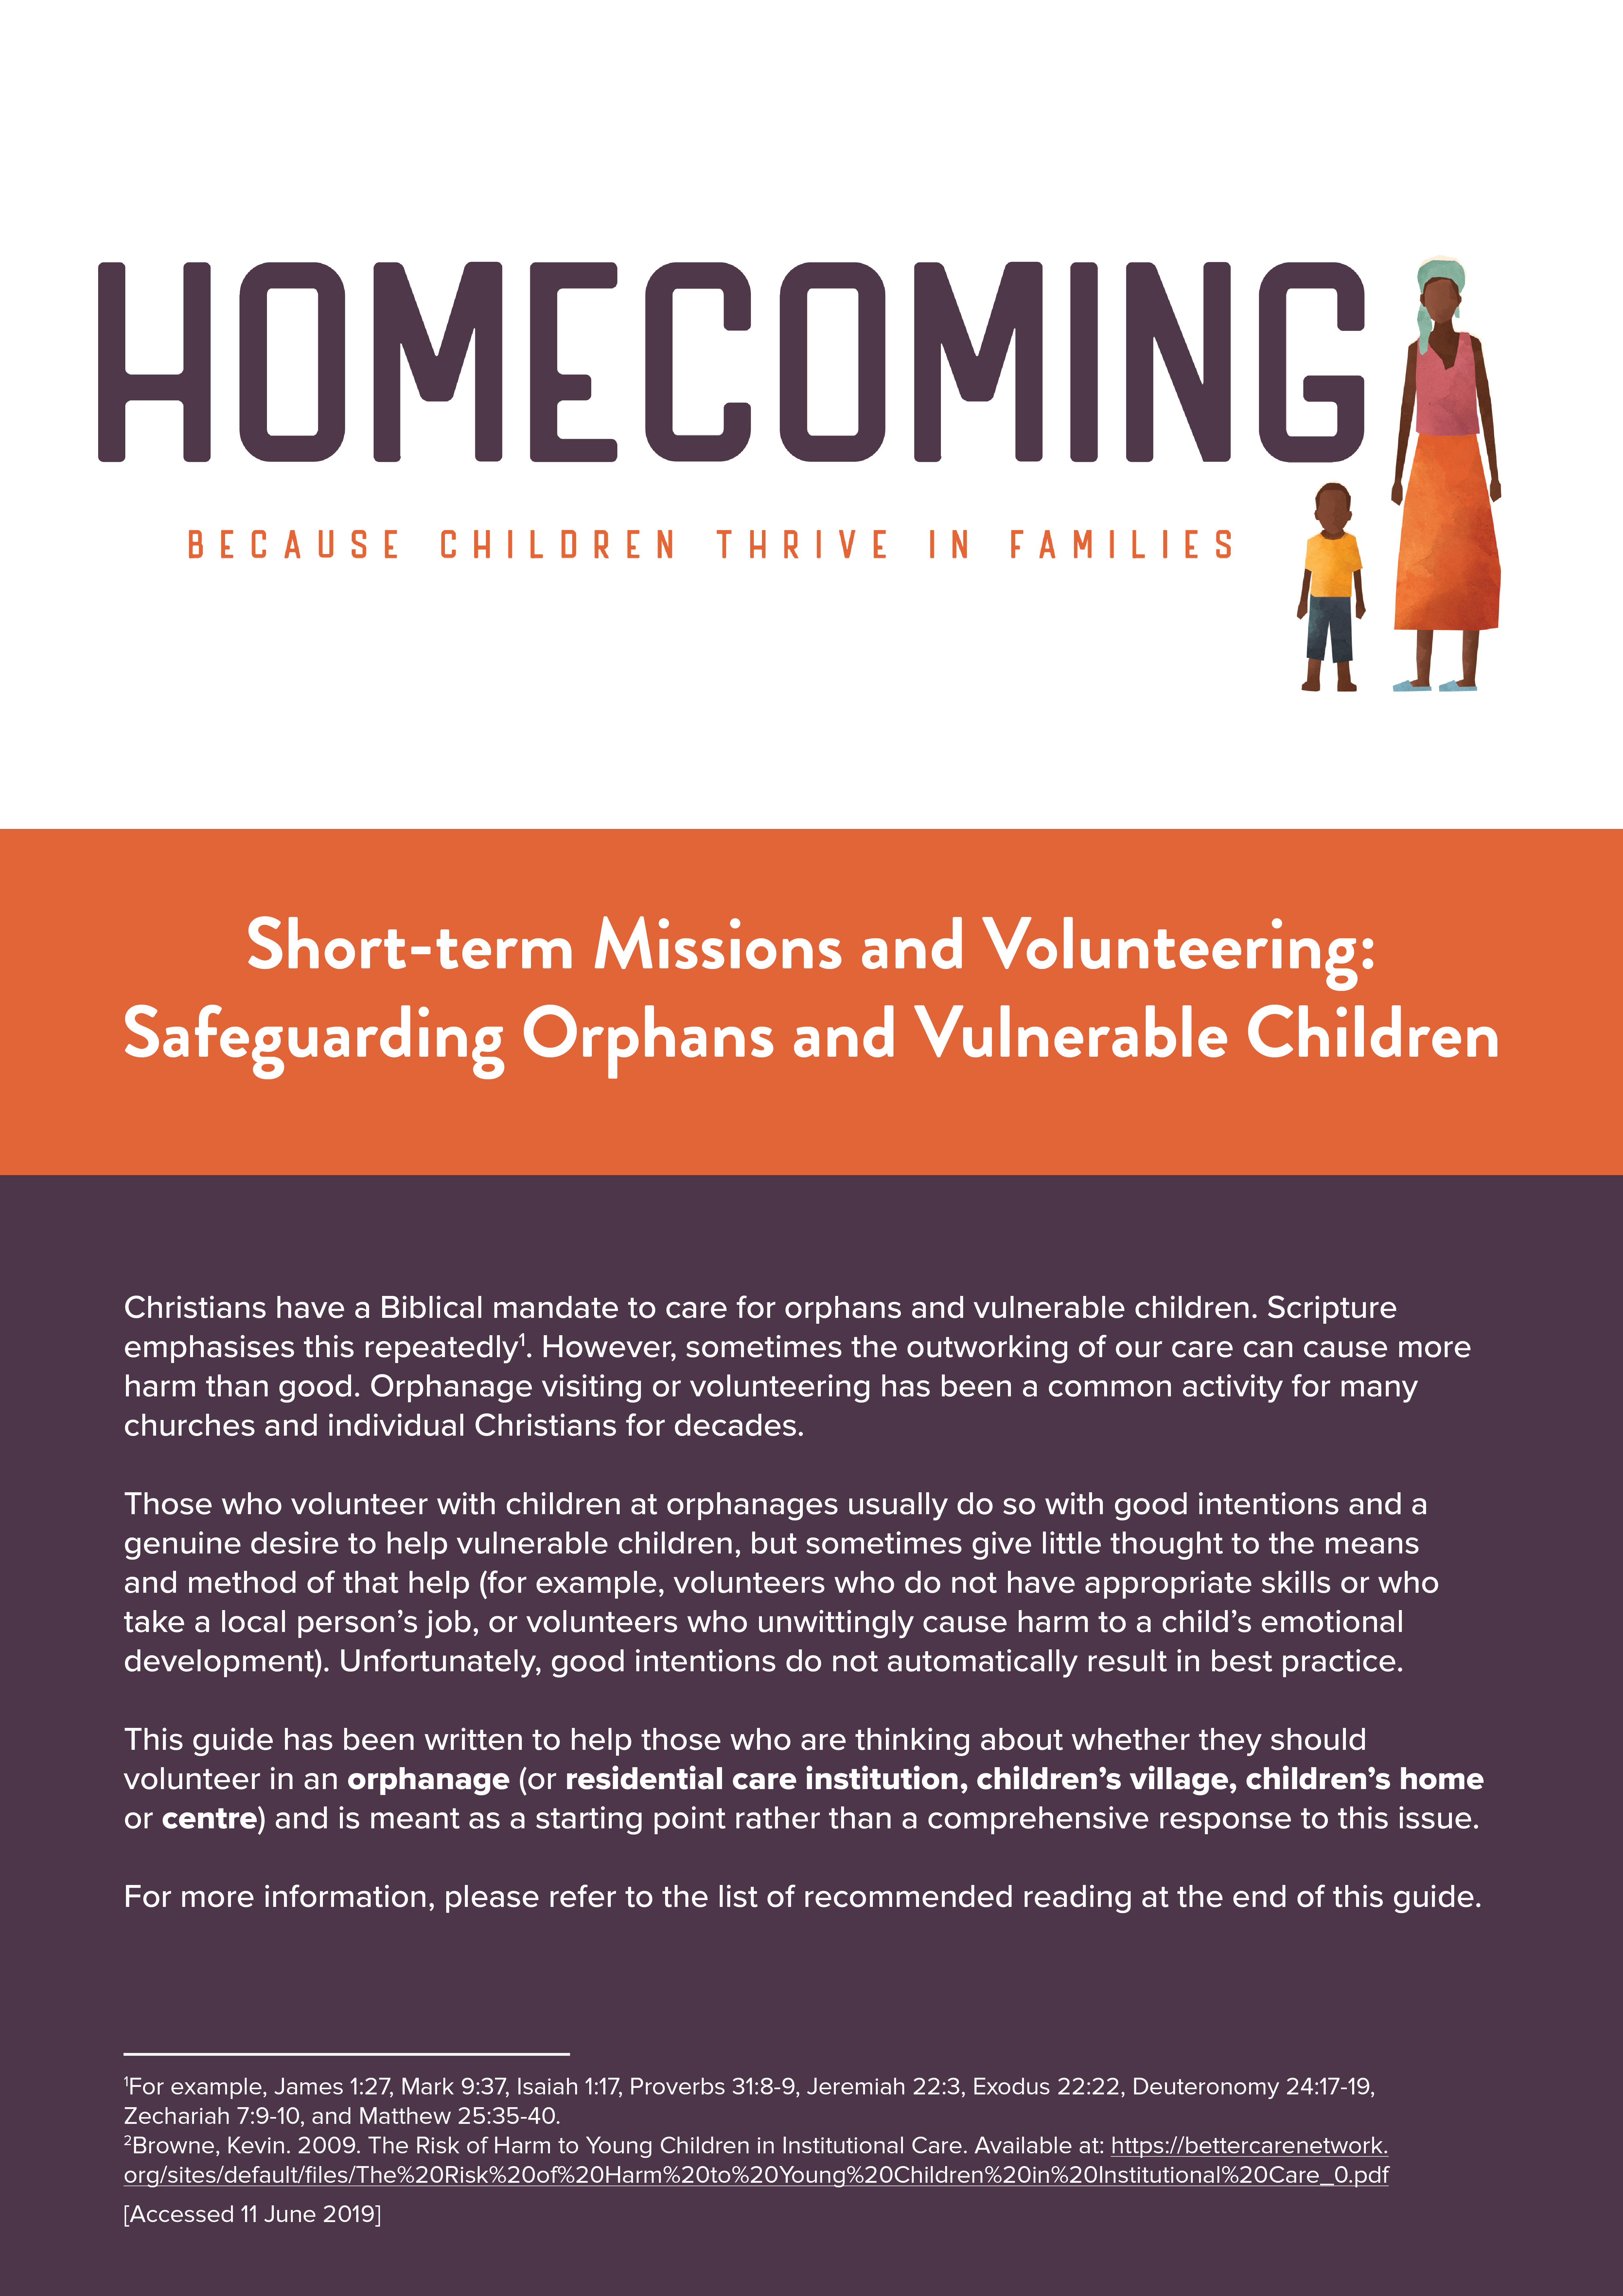 Short-term Missions and Volunteering: Safeguarding Orphans and Vulnerable Children